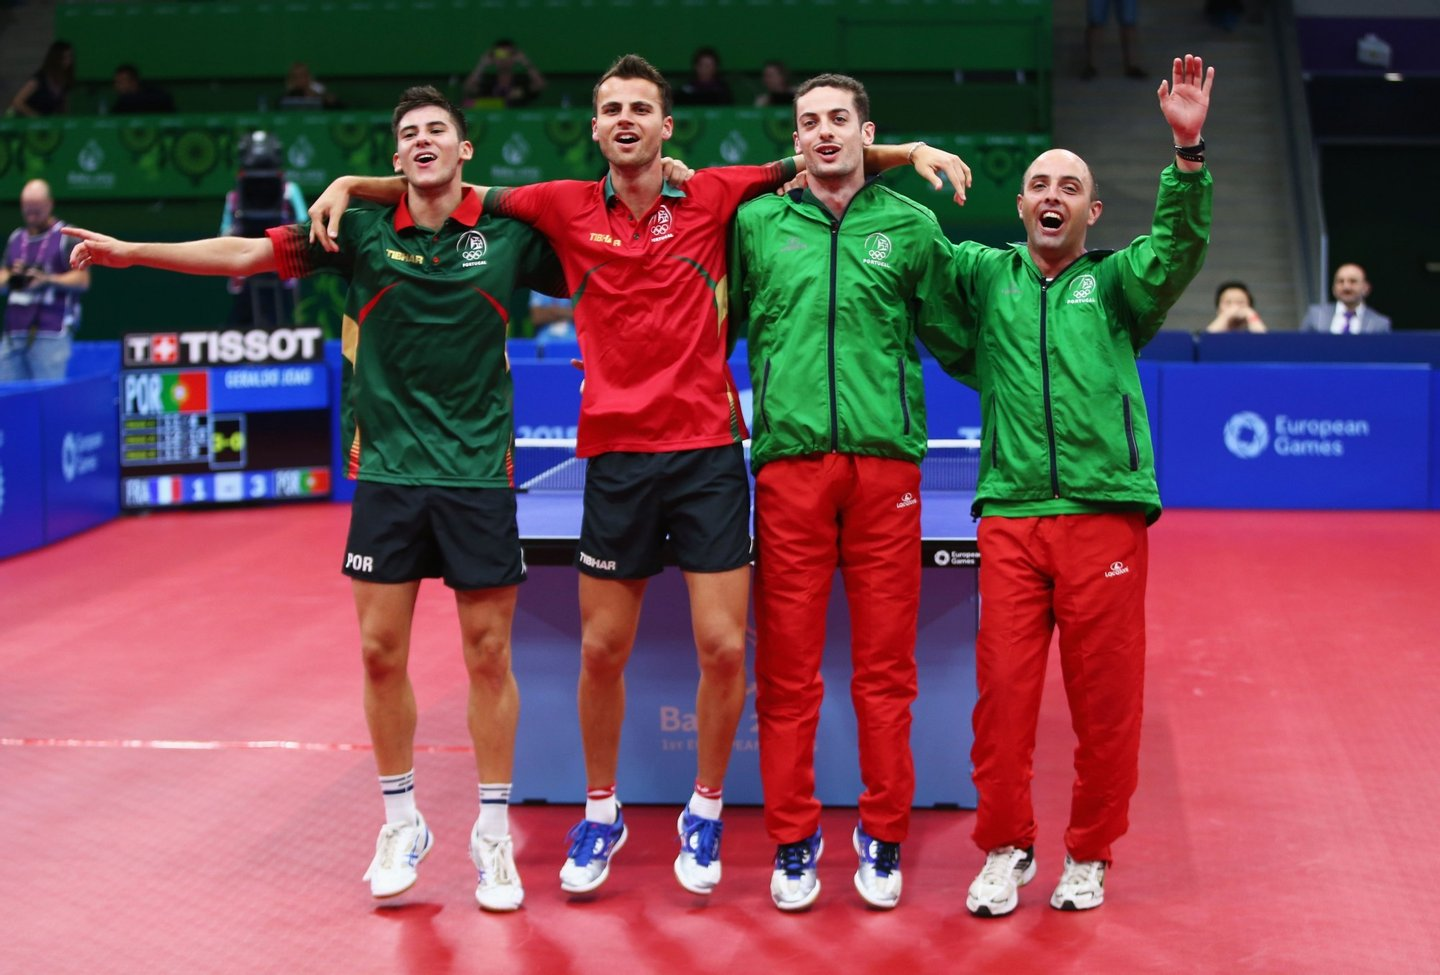 BAKU, AZERBAIJAN - JUNE 15:  Joao Geraldo, Tiago Apolonia, Marcos Freitas and coach of Portugal celebrate winning the gold medal in the Mens Table Tennis Team Final during day three of the Baku 2015 European Games at Baku Sports Hall on June 15, 2015 in Baku, Azerbaijan.  (Photo by Francois Nel/Getty Images for BEGOC)